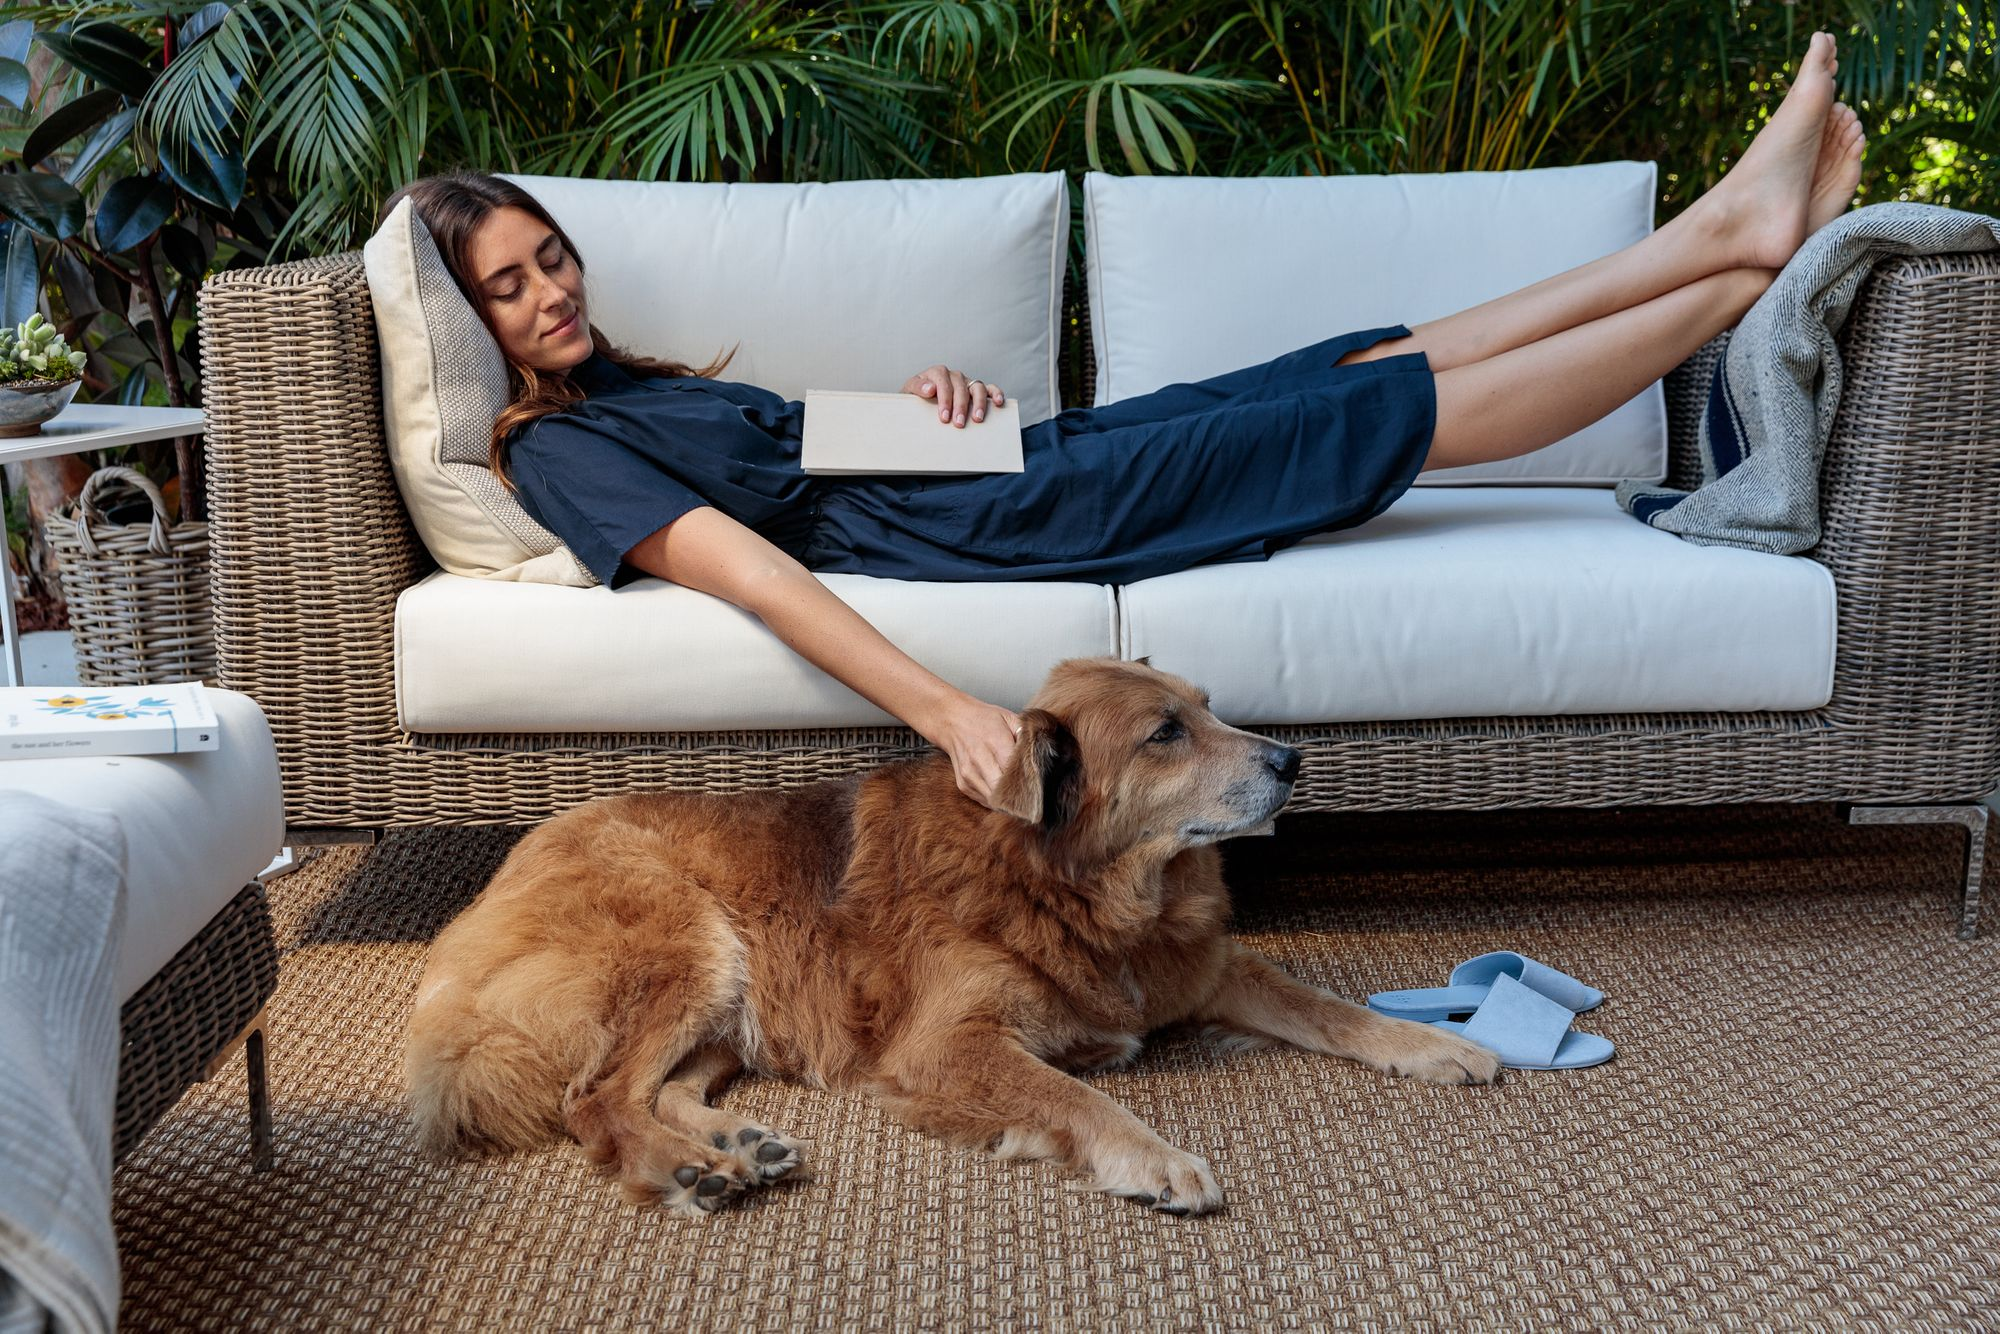 Woman laying on outdoor wicker furniture while petting her dog